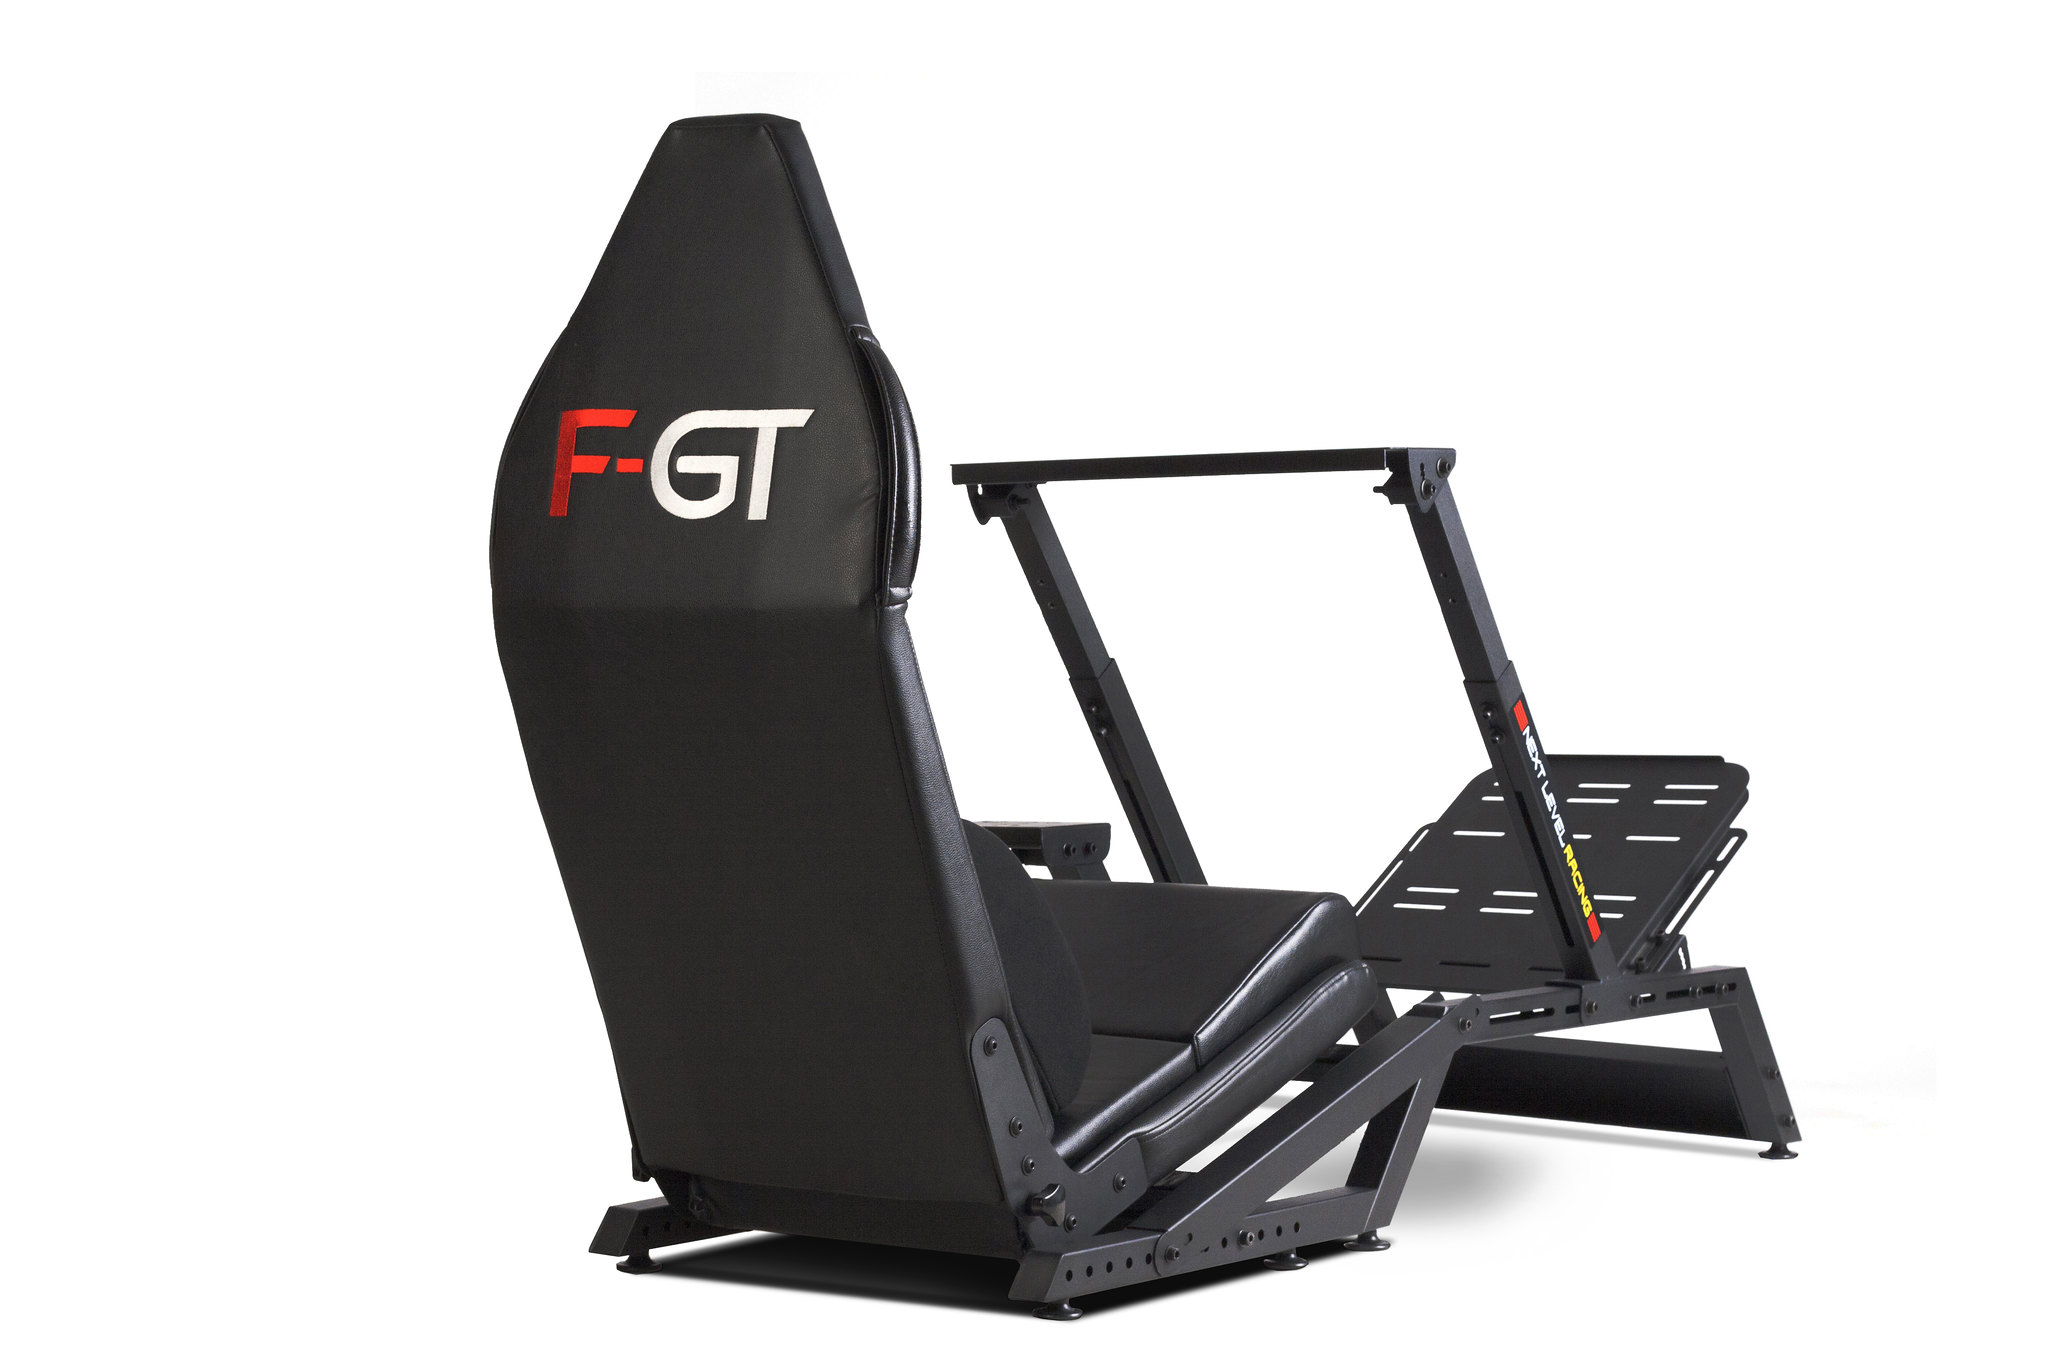 Next Level Racing F-GT Matte Black Simulator Cockpit 9